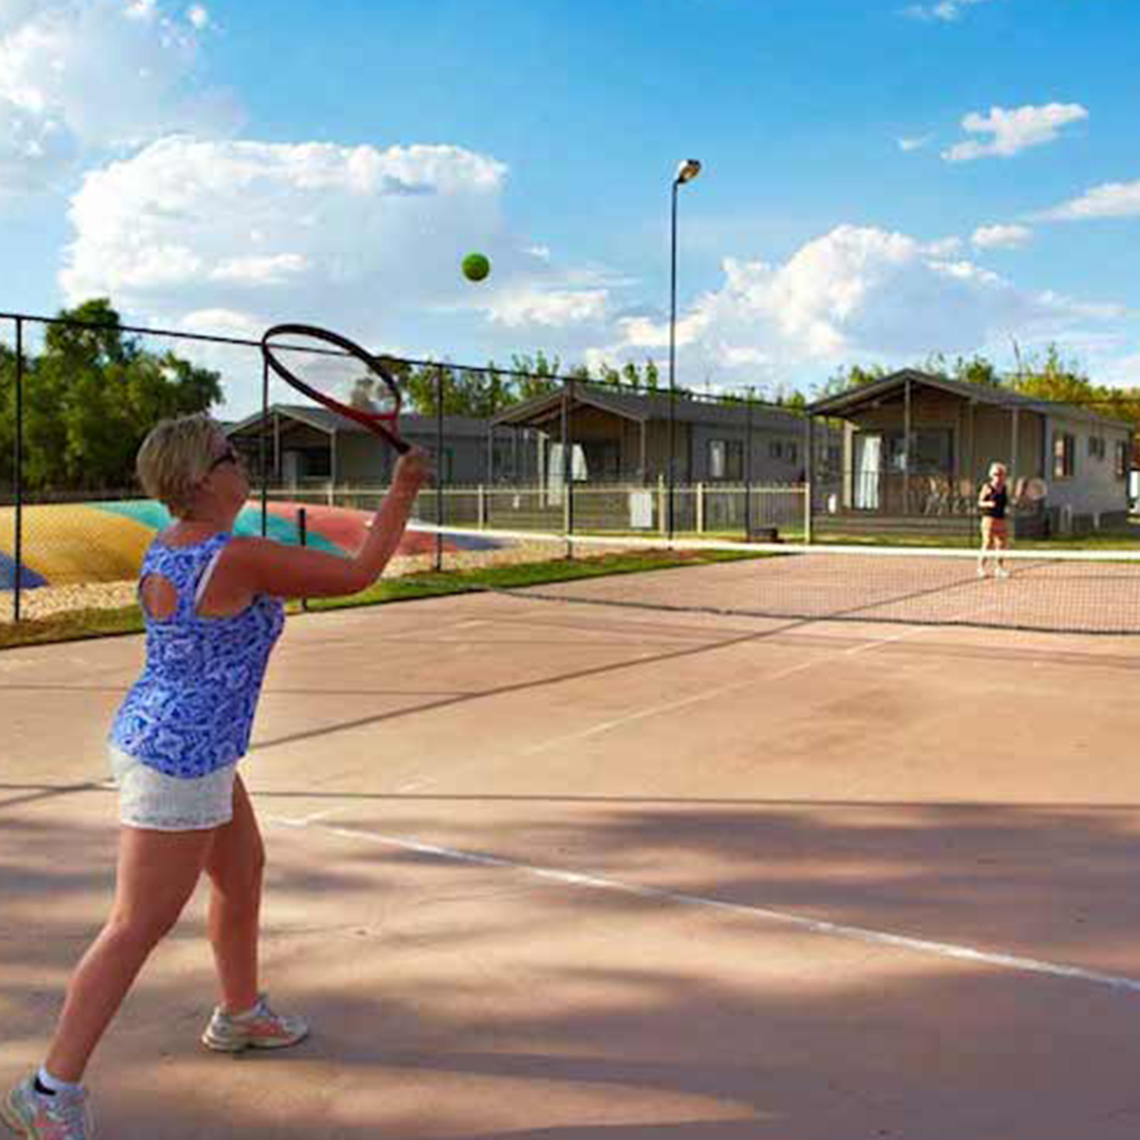 NRMA_YM-GalleryImage-TennisCourt